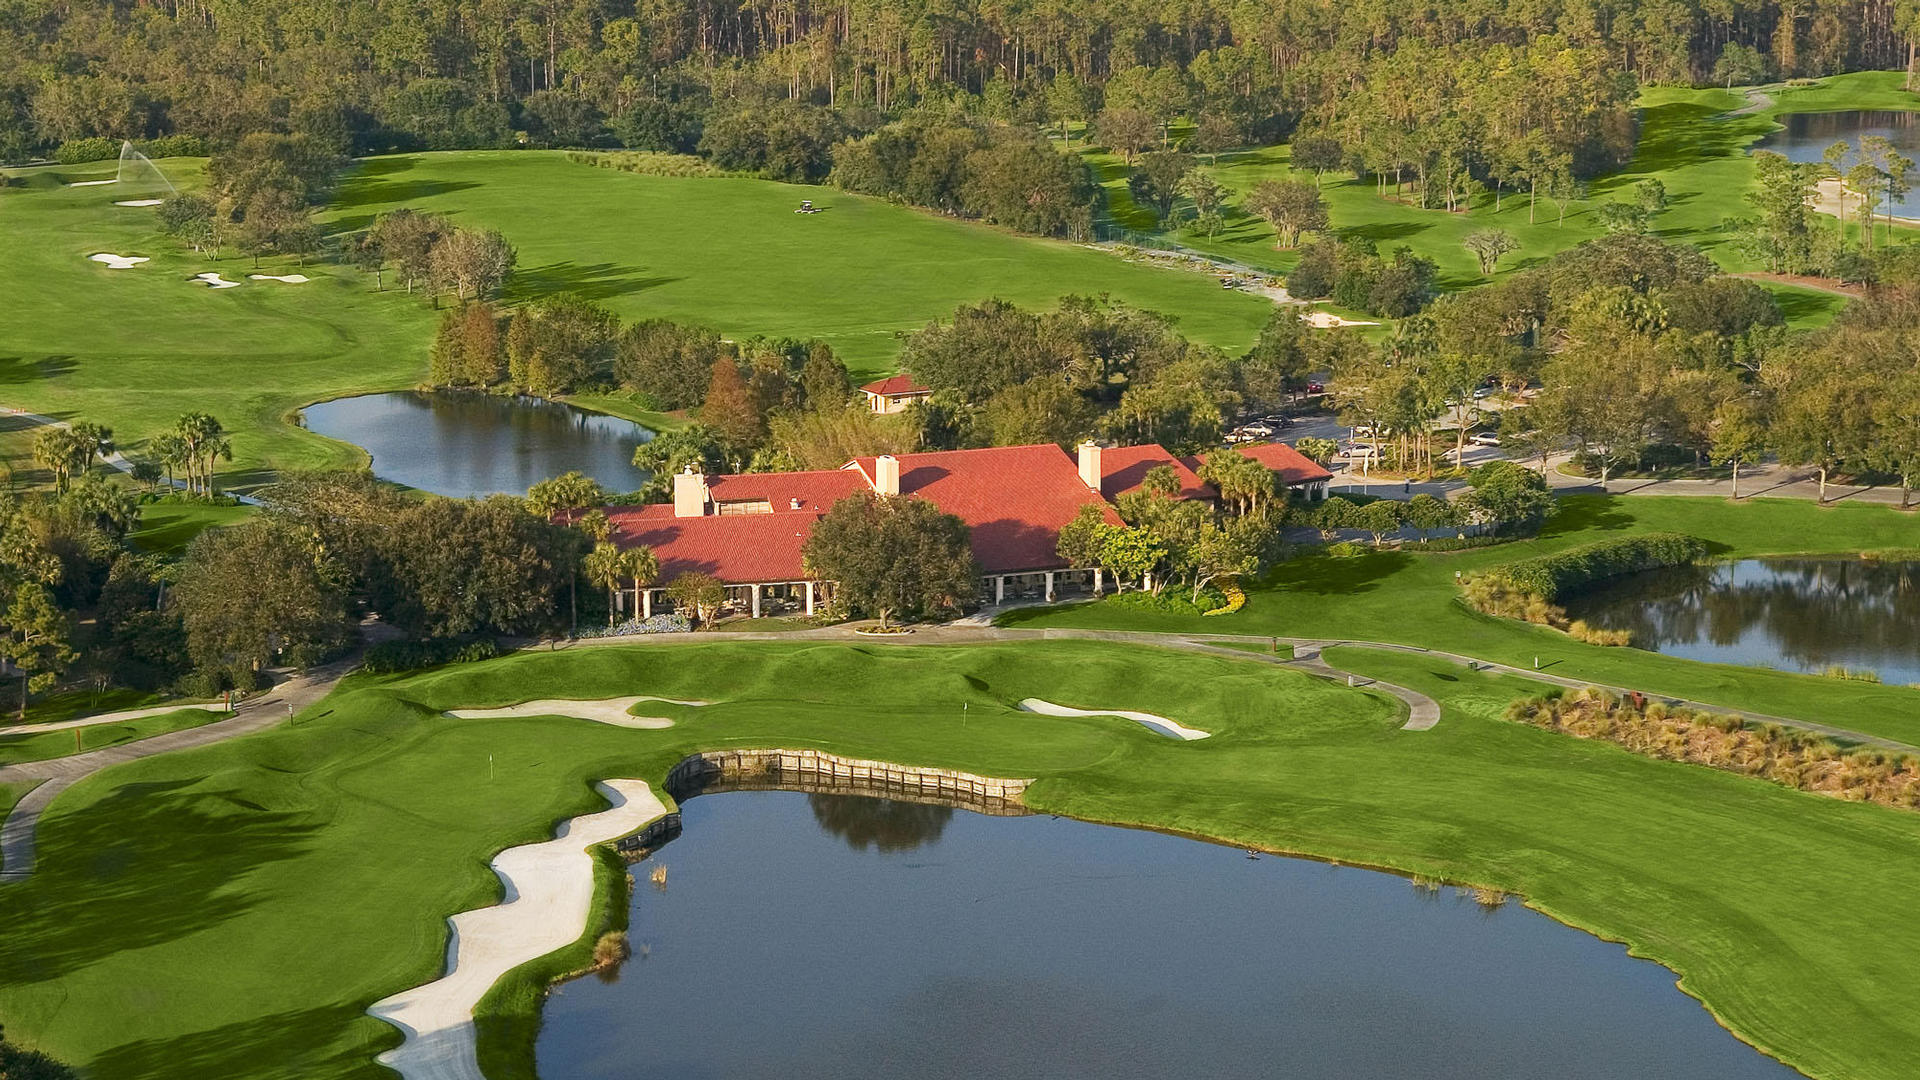 Aerial View Of The Villas of Grand Cypress Orlando, FL